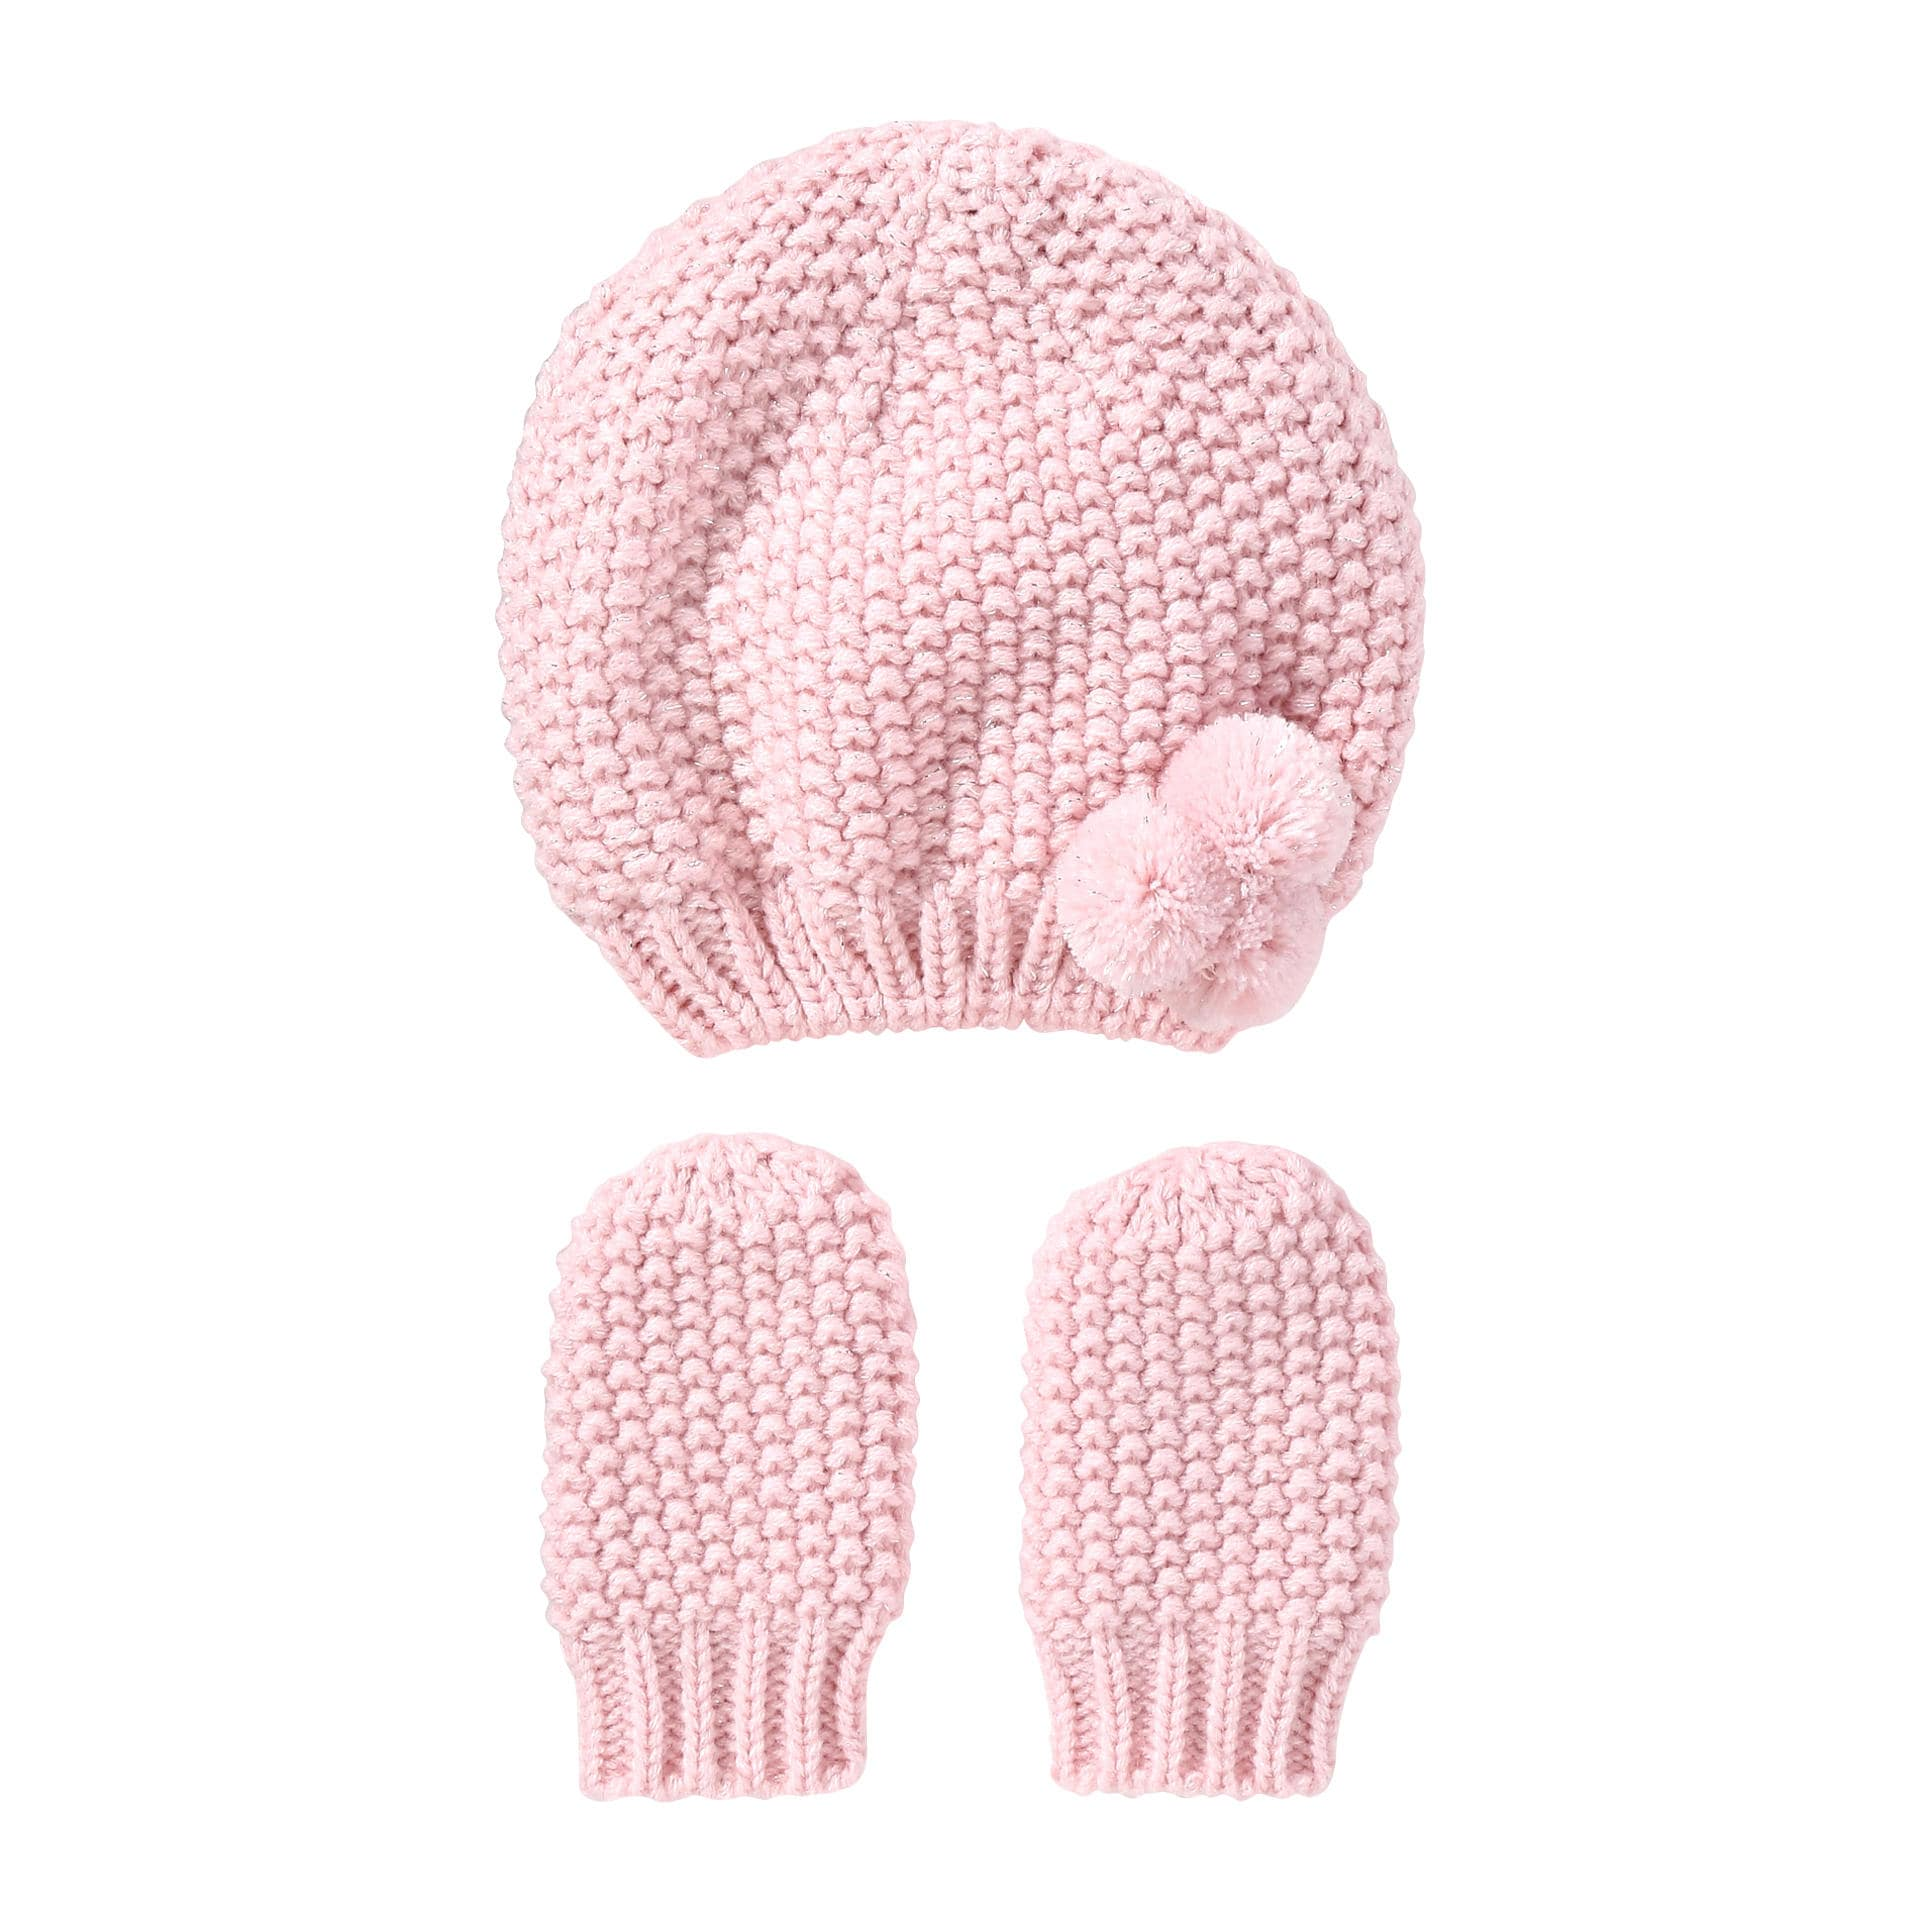 049dc31daa3 Baby Girls  Hat and Mittens Set in Pink from Joe Fresh